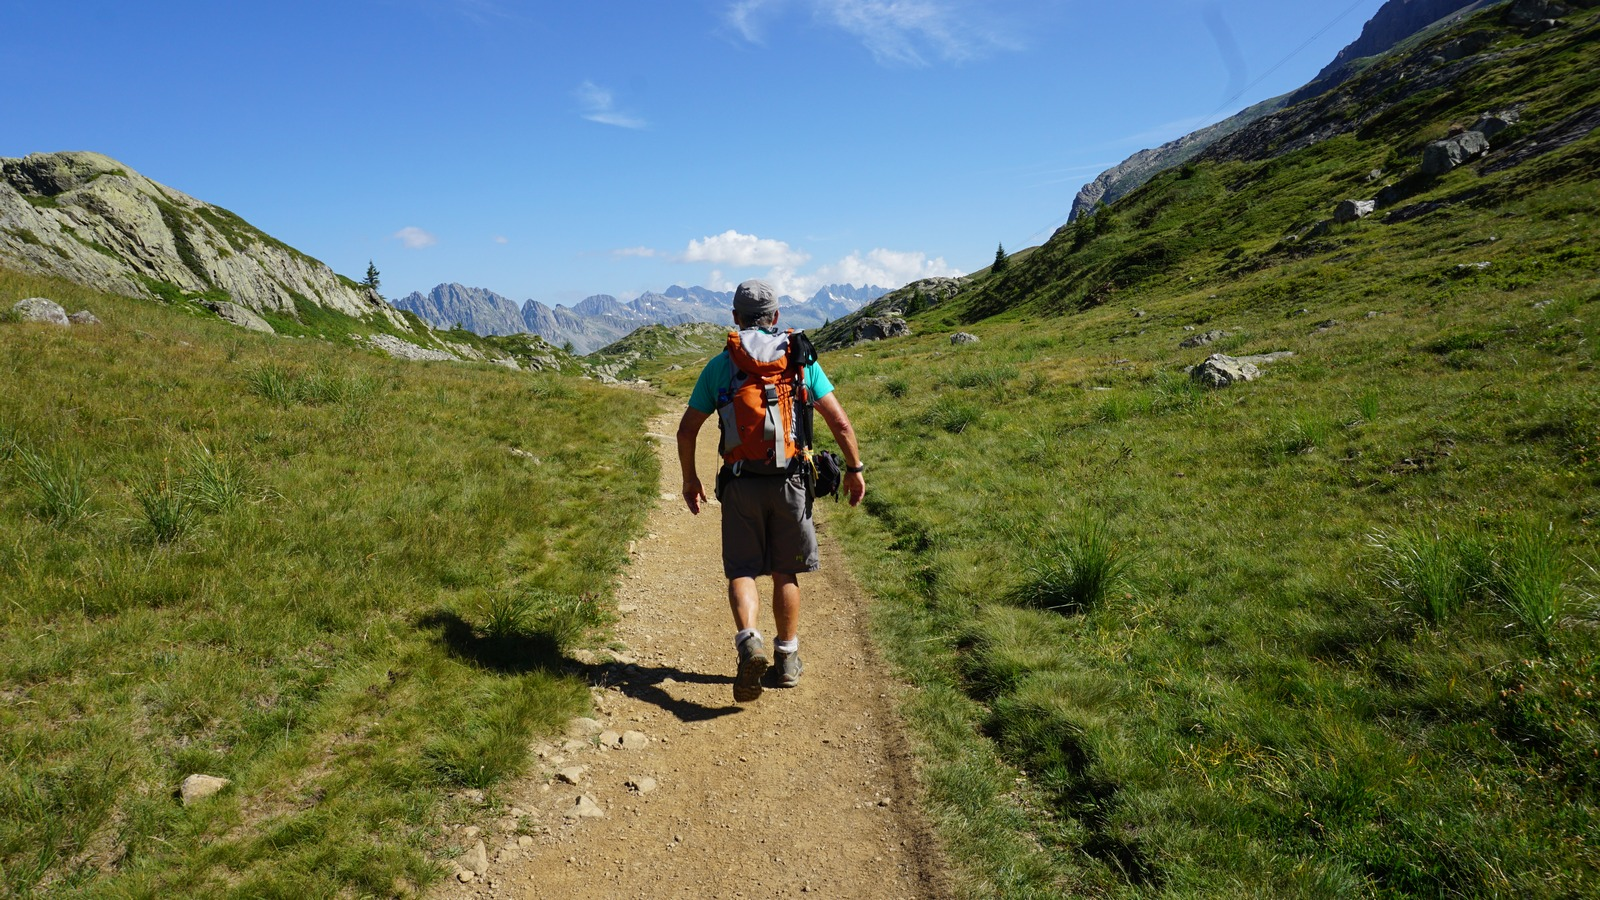 Well maintained GR549 trail north of Alpe d'Huez